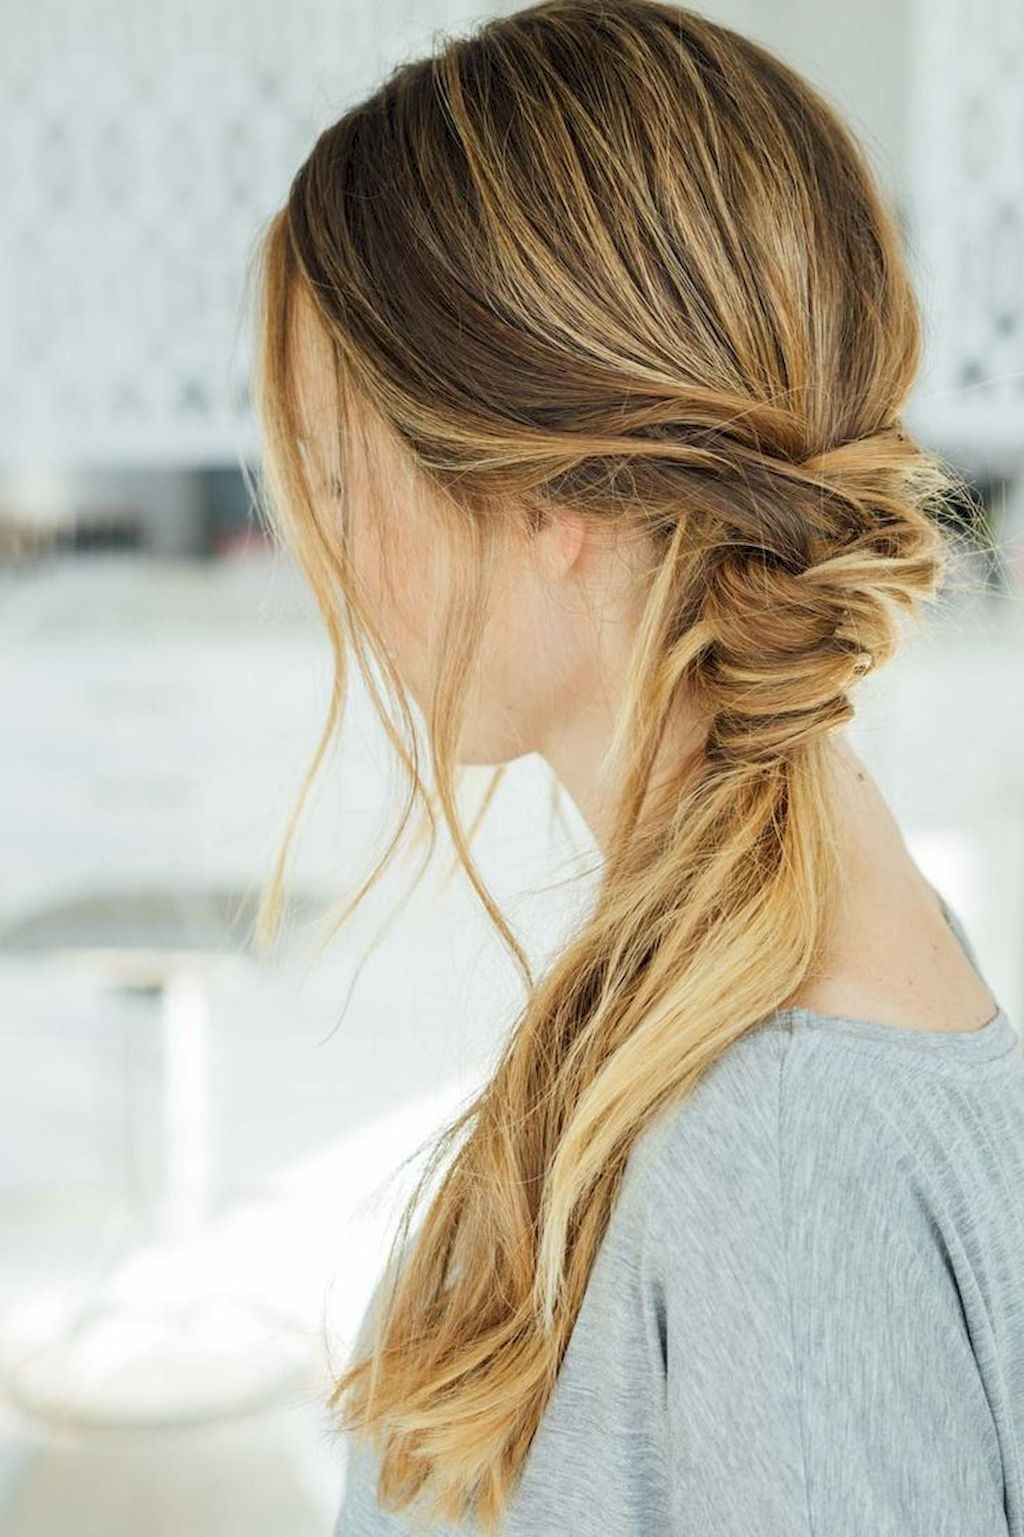 14 Easy Summer Hairstyle To Do Yourself